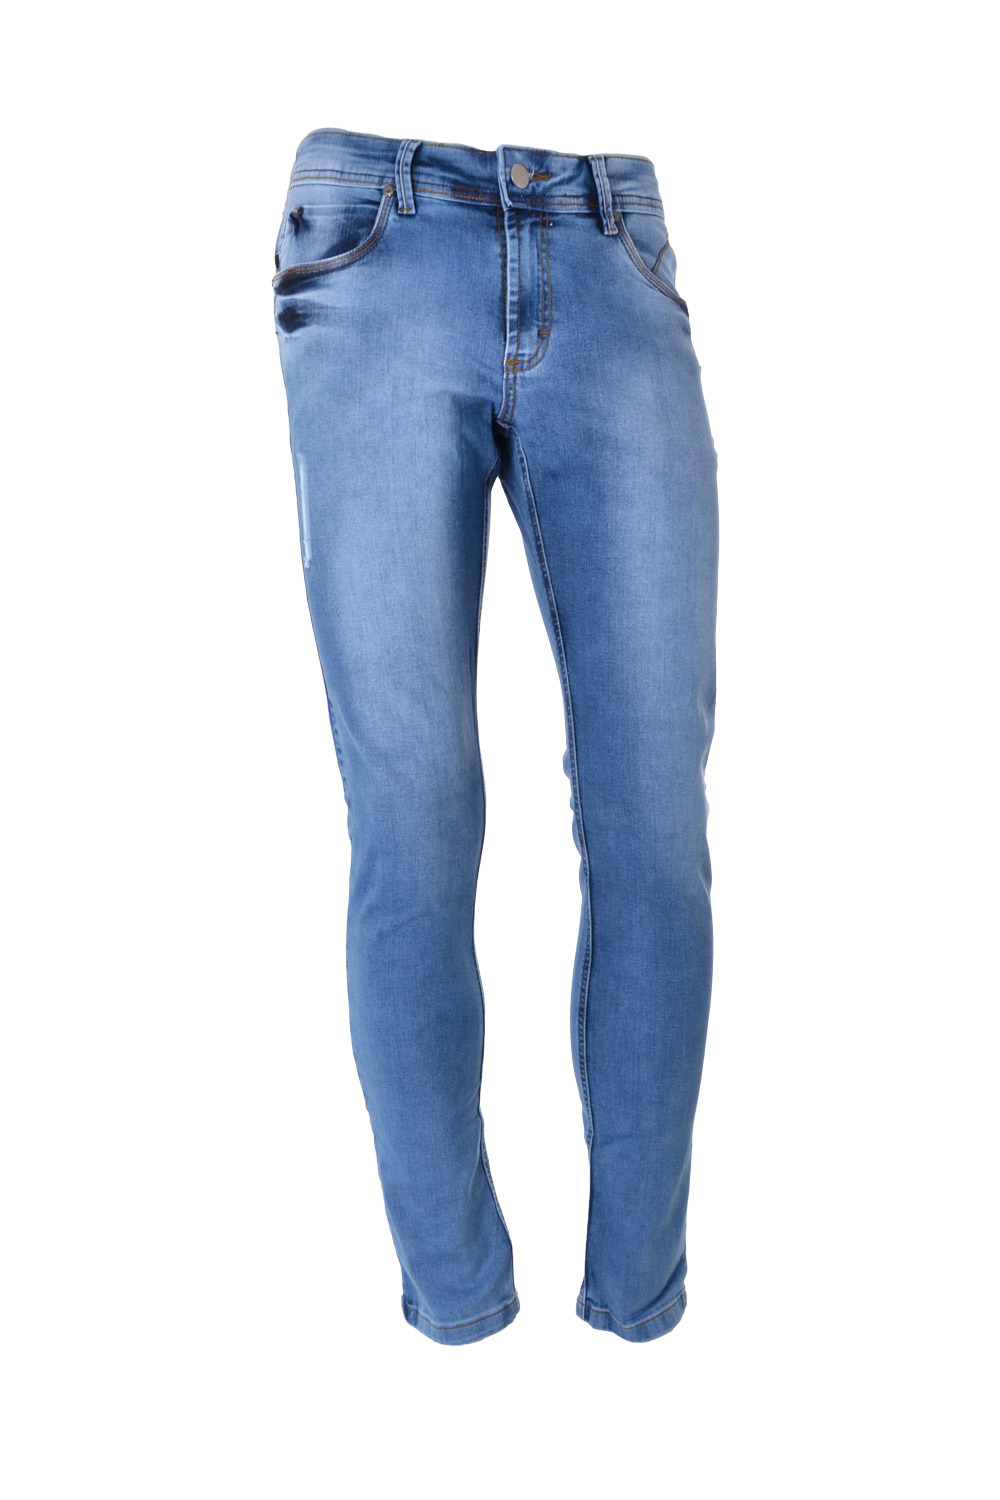 CALÇA JEANS BLUES ALGODAO & ELASTANO STRETCH STONED DESTROYED